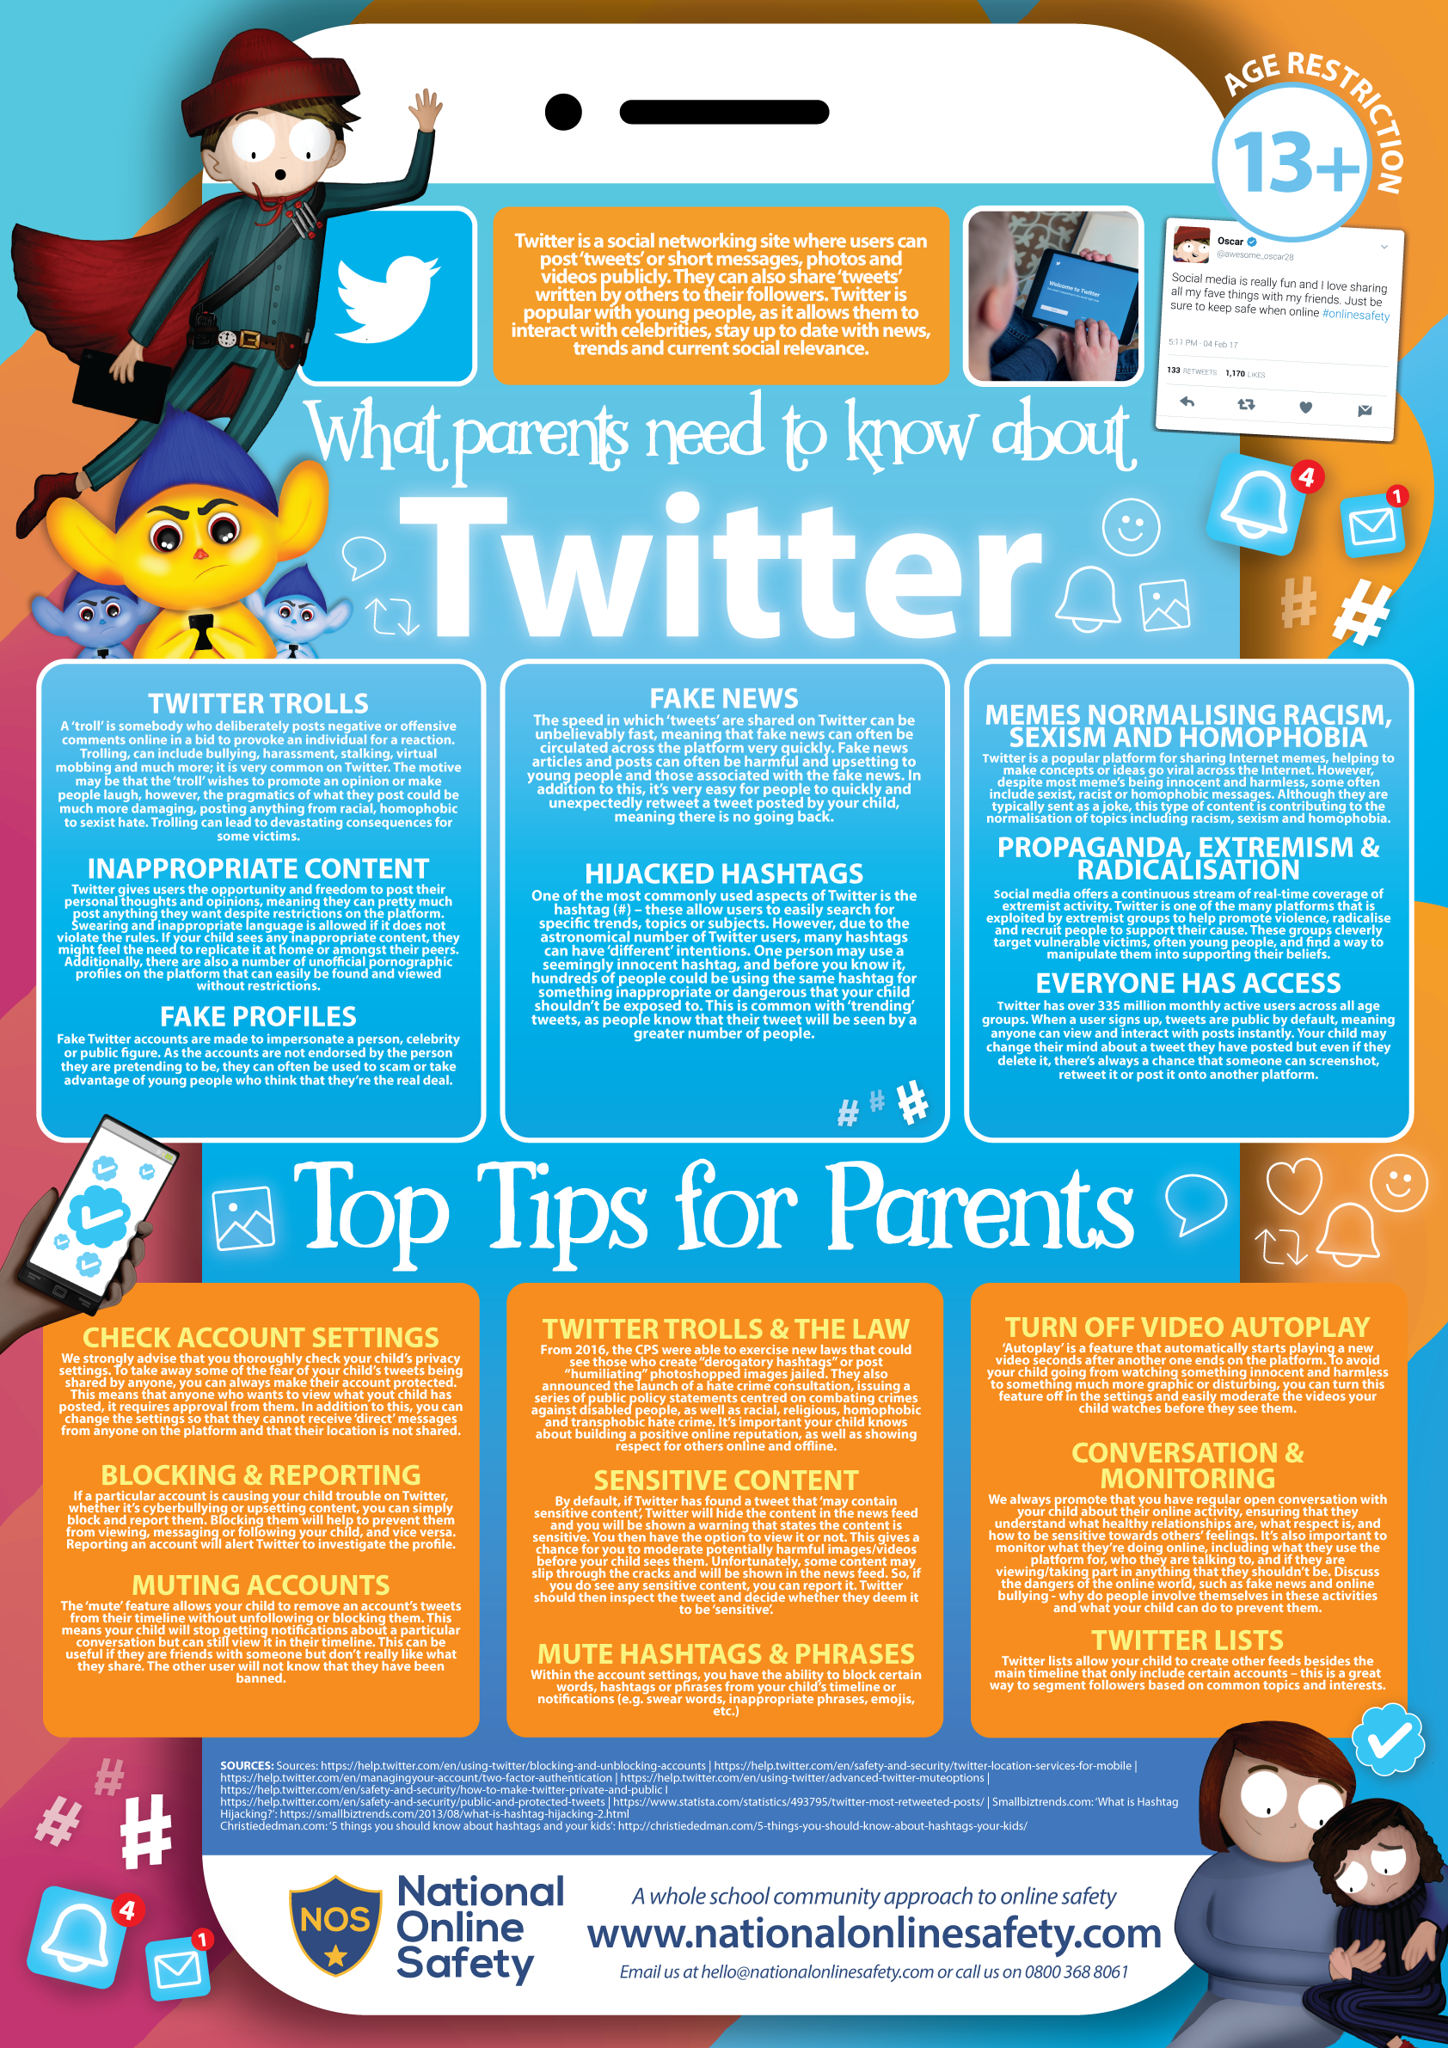 National Online Safety Guidance for Parents.